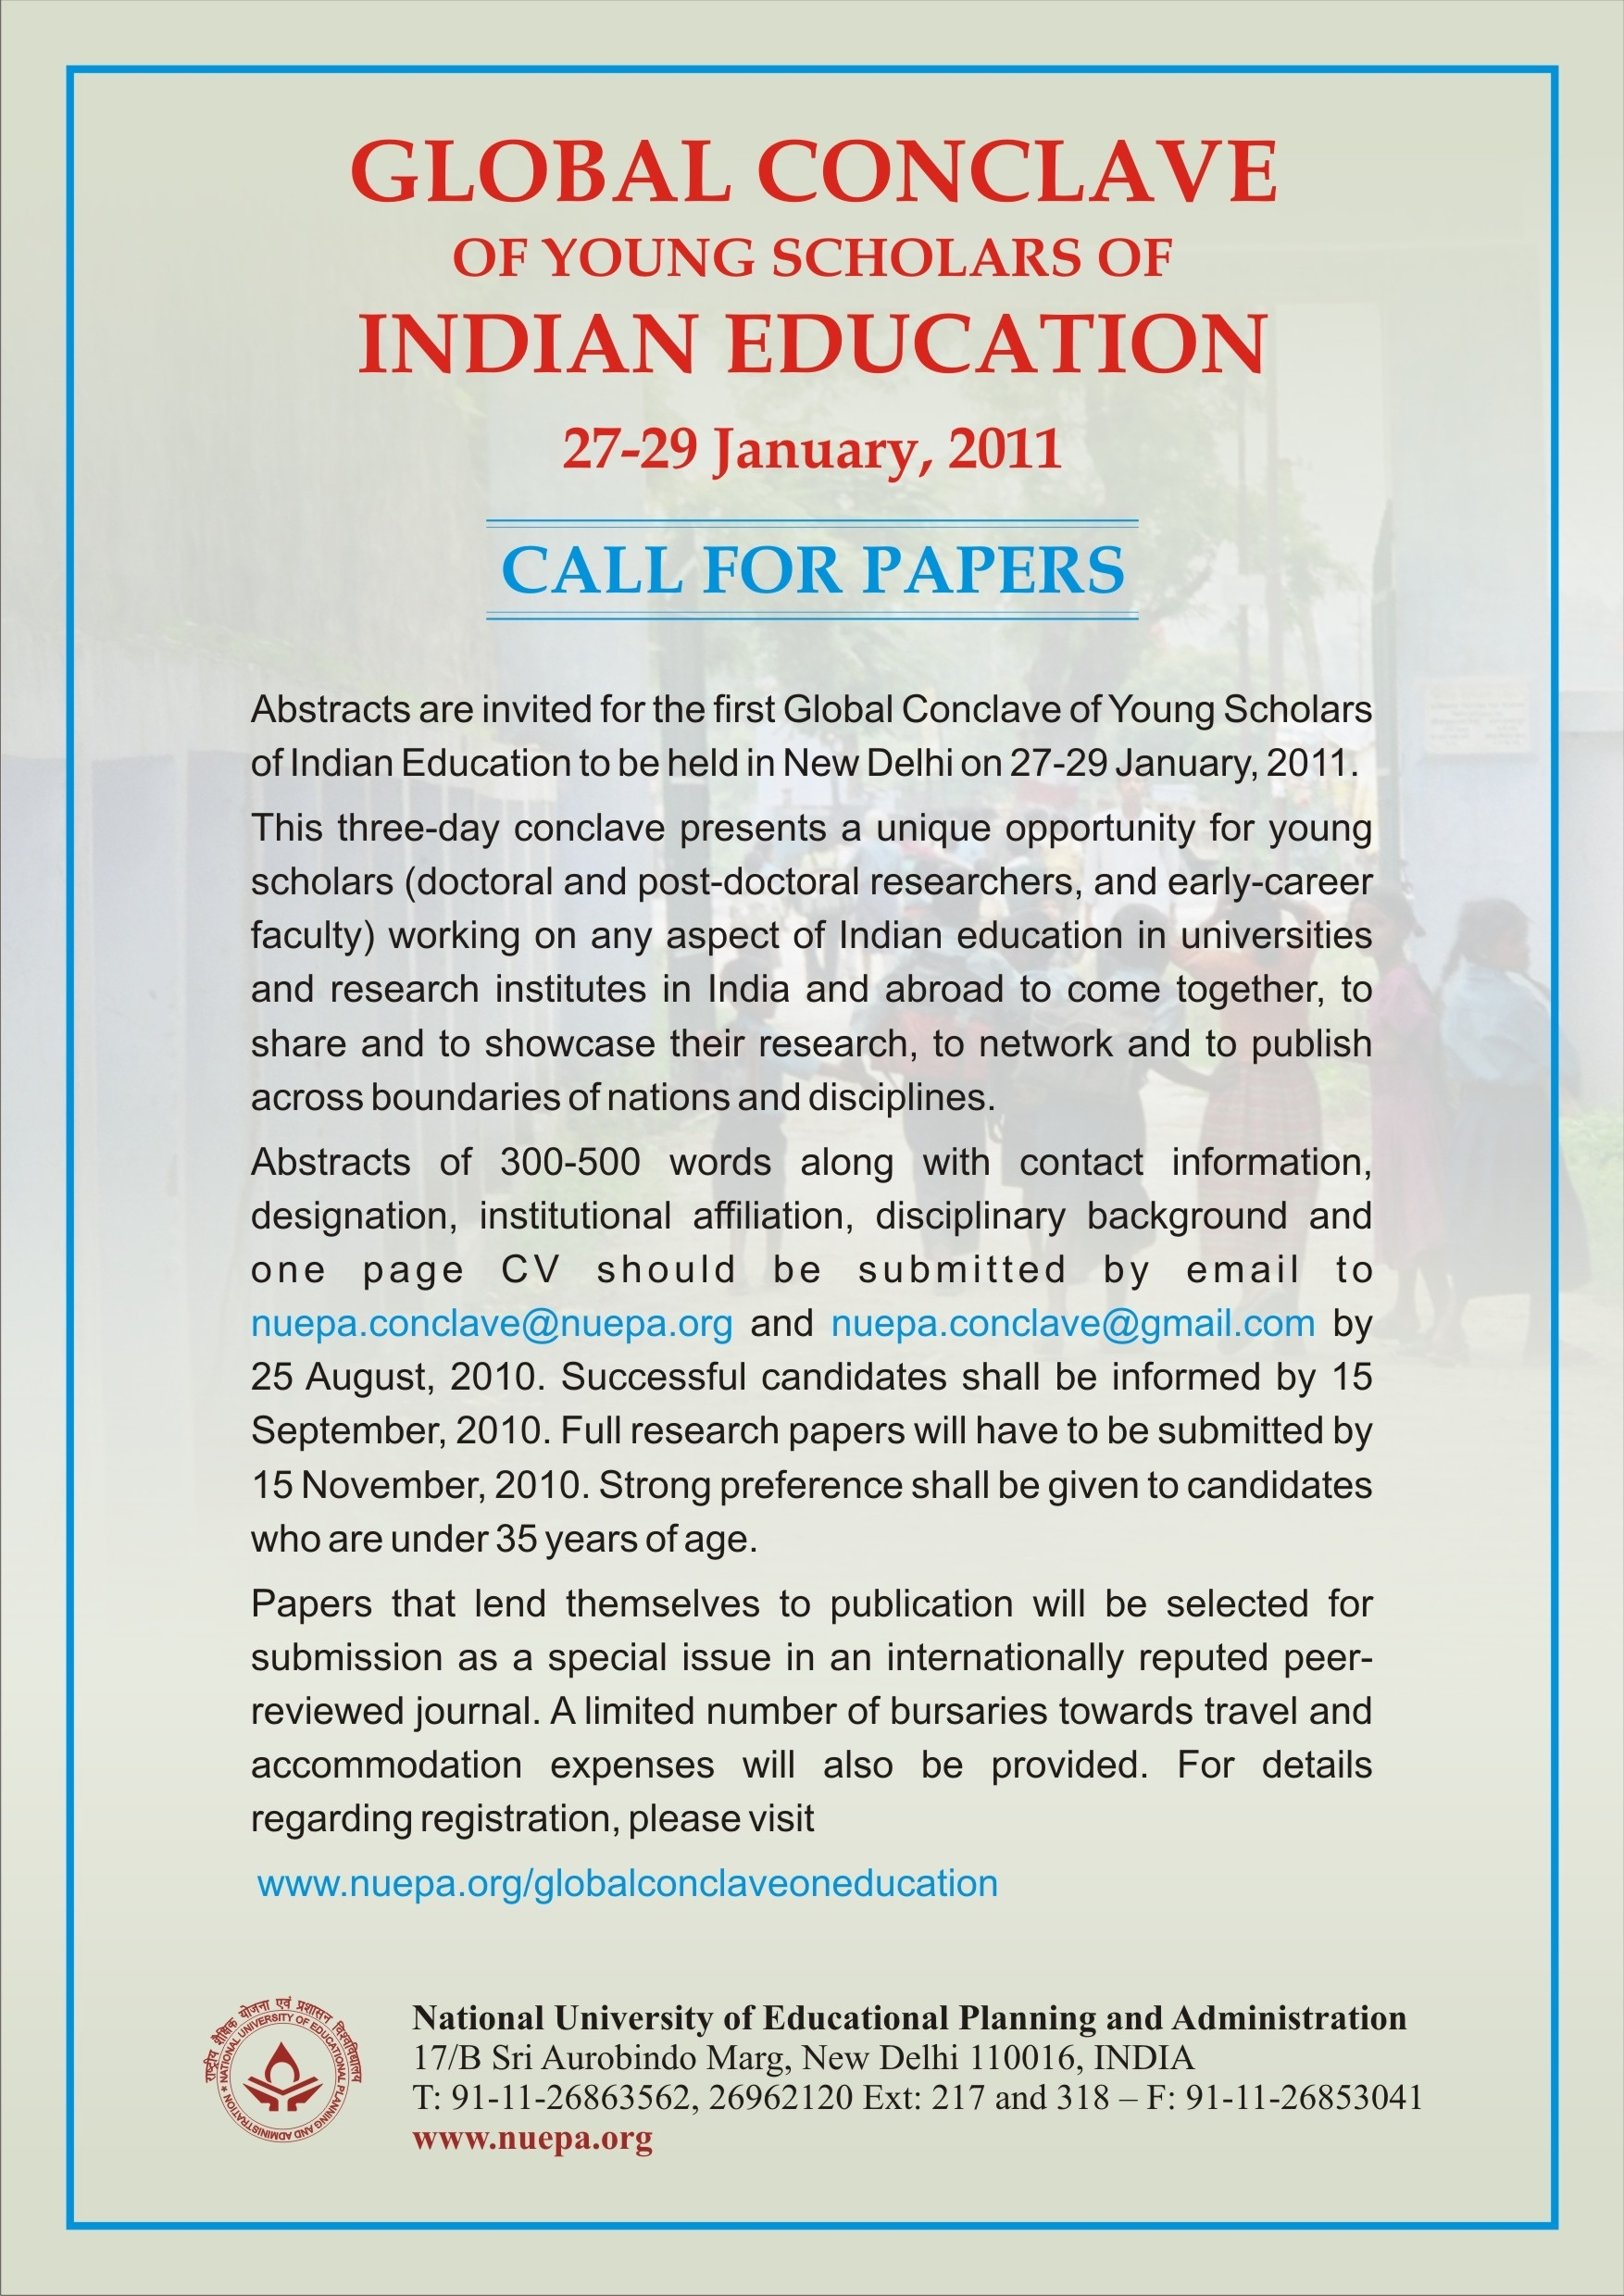 indian research papers Call for paper – september issue 2018 click here for more details international journal of innovative research and advanced studies (ijiras)(issn: 2394-4404) is a brisk multidisciplinary educational research platform providing those individuals an ideal intricate opportunity to accomplish their desires who long for a refined betterment in .